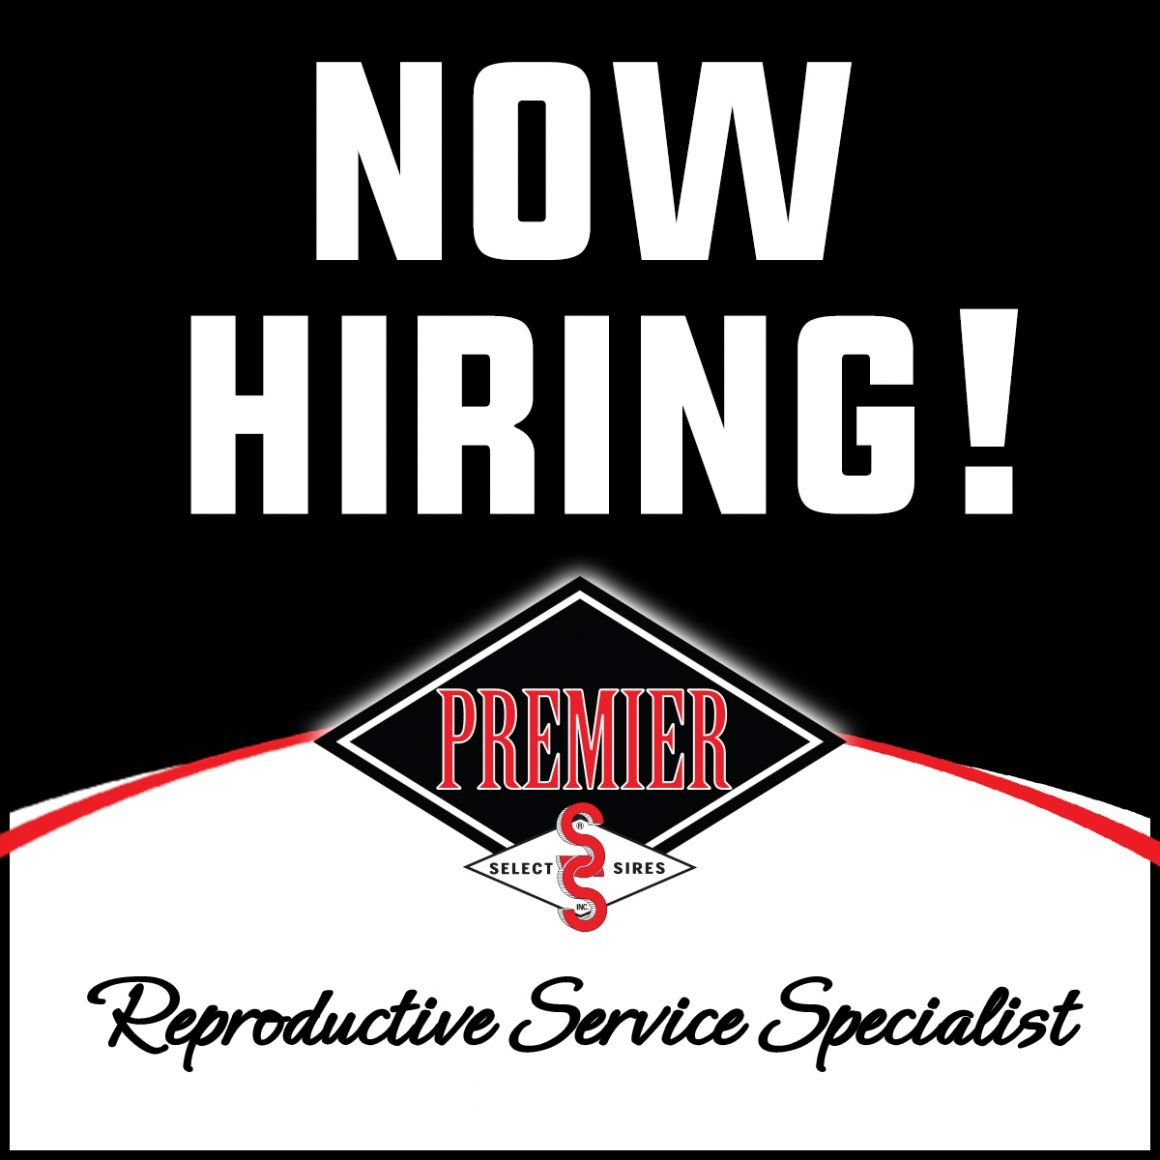 Reproductive Service Specialist in Western New York